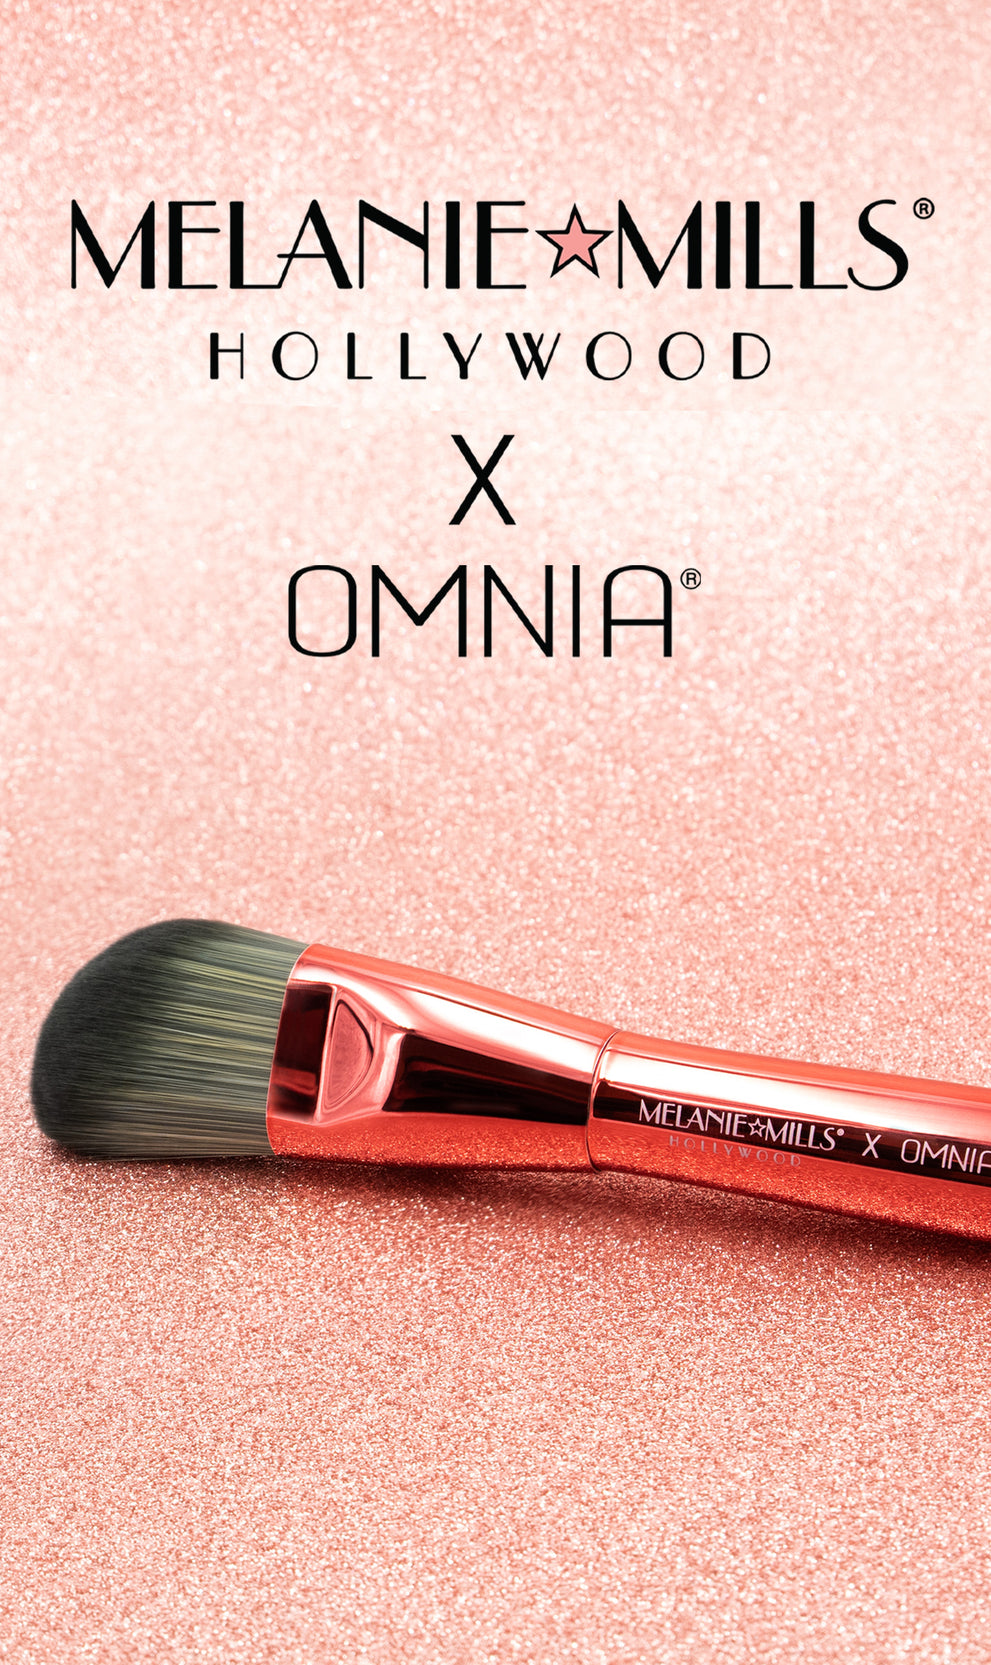 Melanie Mills x OMNIA® Professional Makeup Brushes